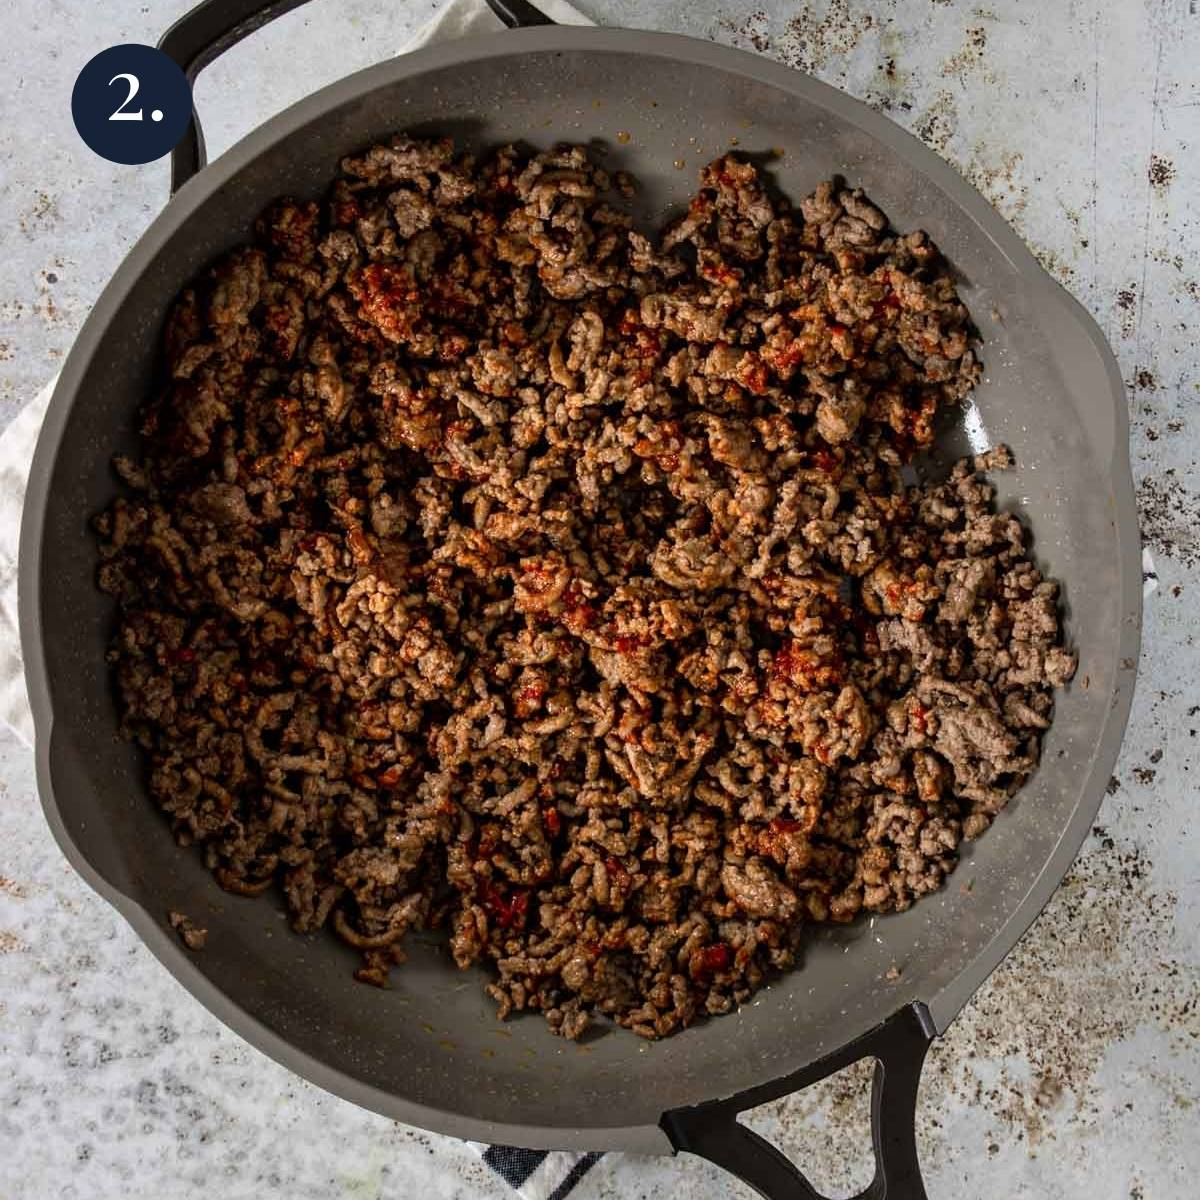 ground beef coated in tomato paste